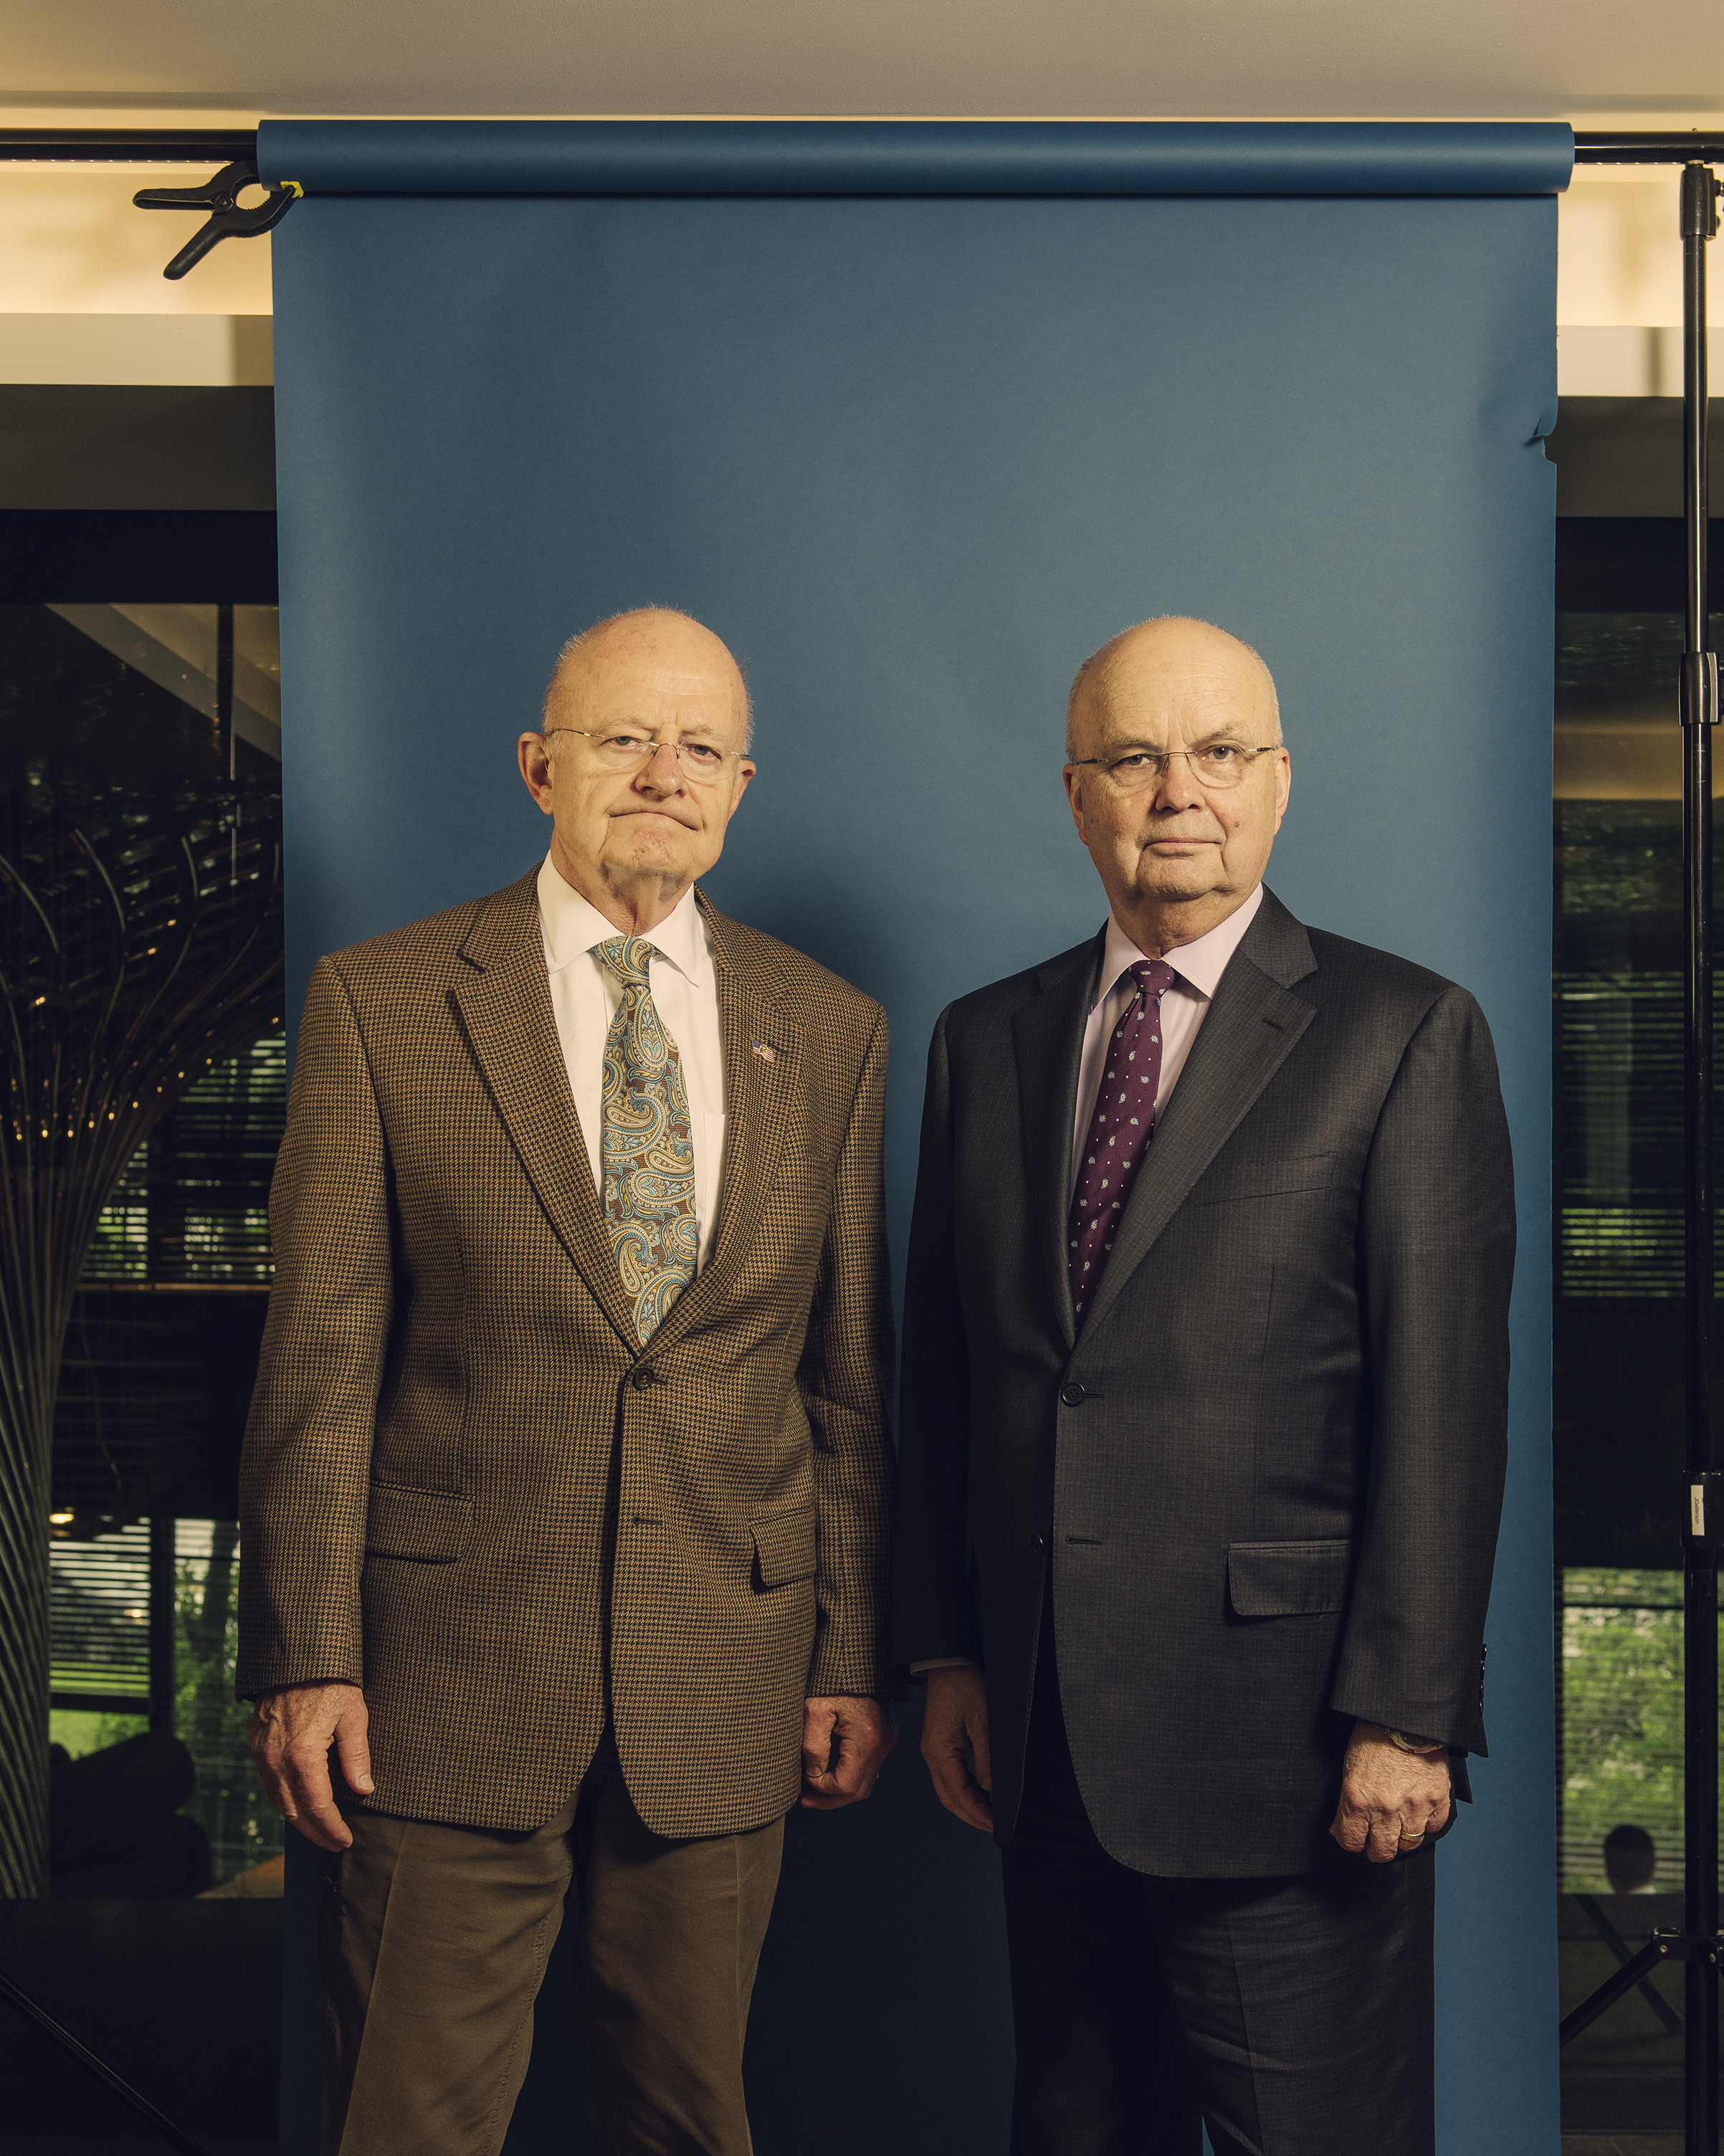 Former Director of National Intelligence James Clapper, left, and former CIA chief Michael Hayden at the Watergate Hotel in May